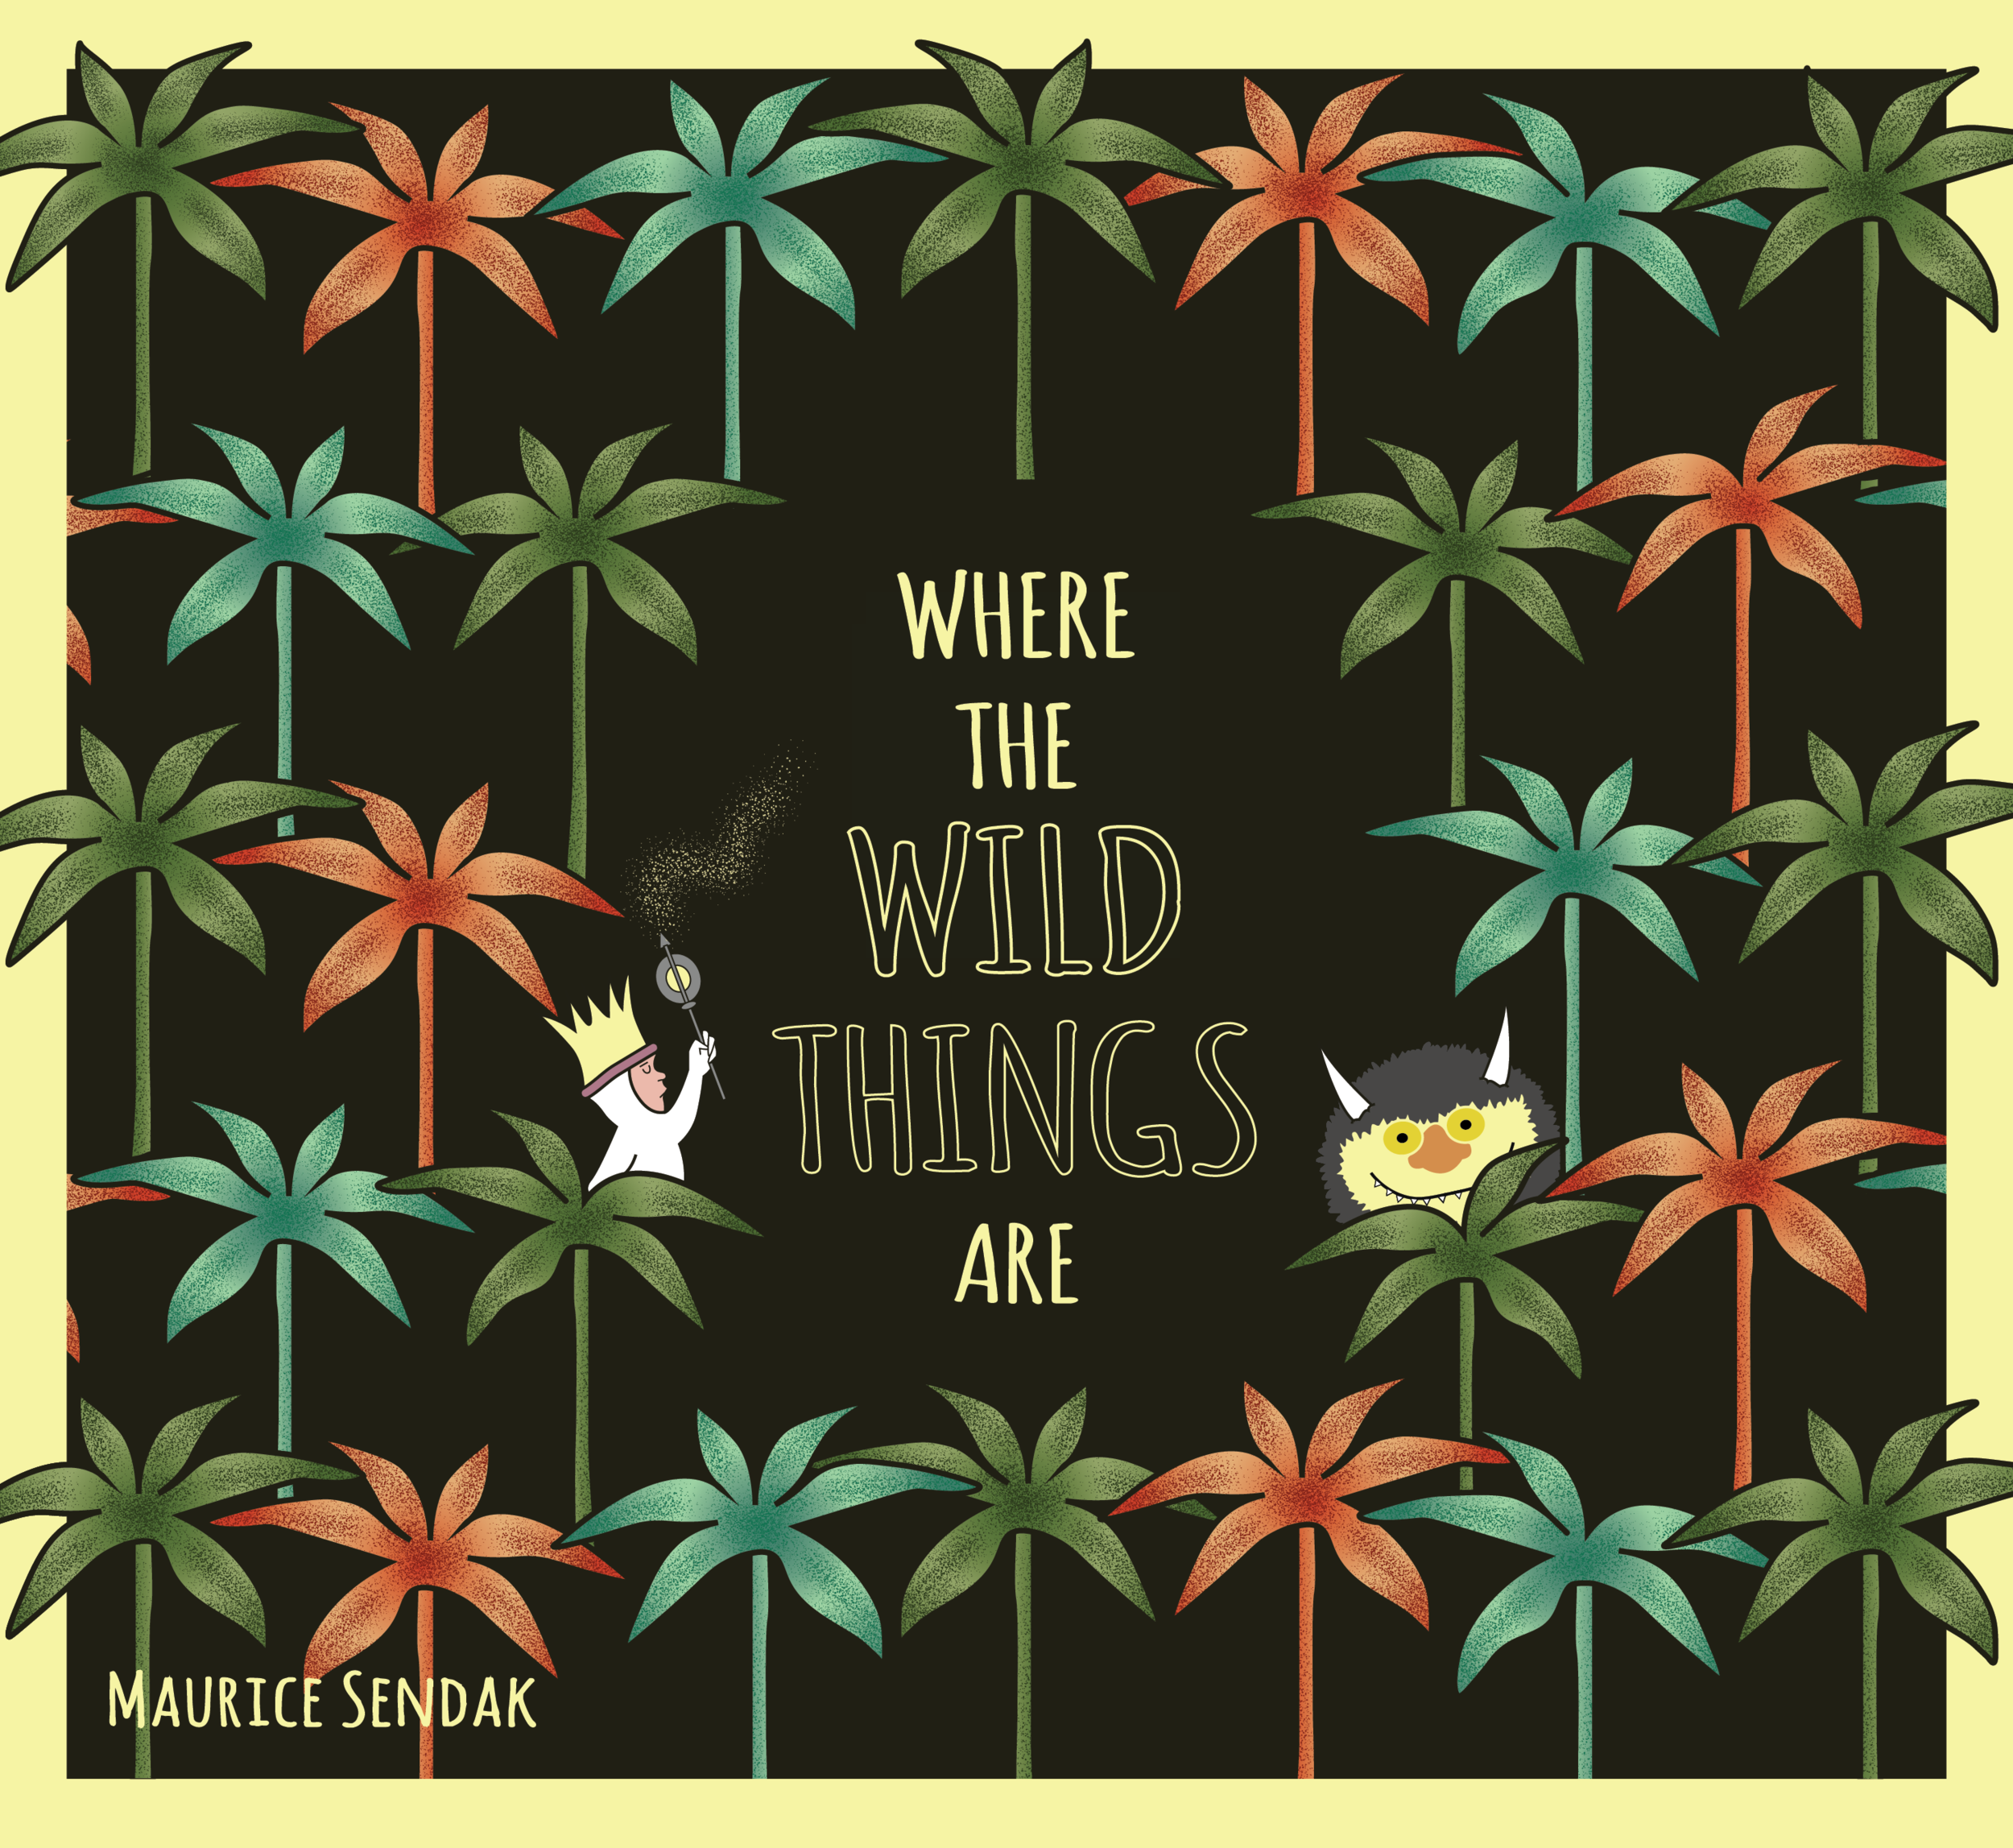 Where The Wild Things Are Book Cover Re-Design (2019)